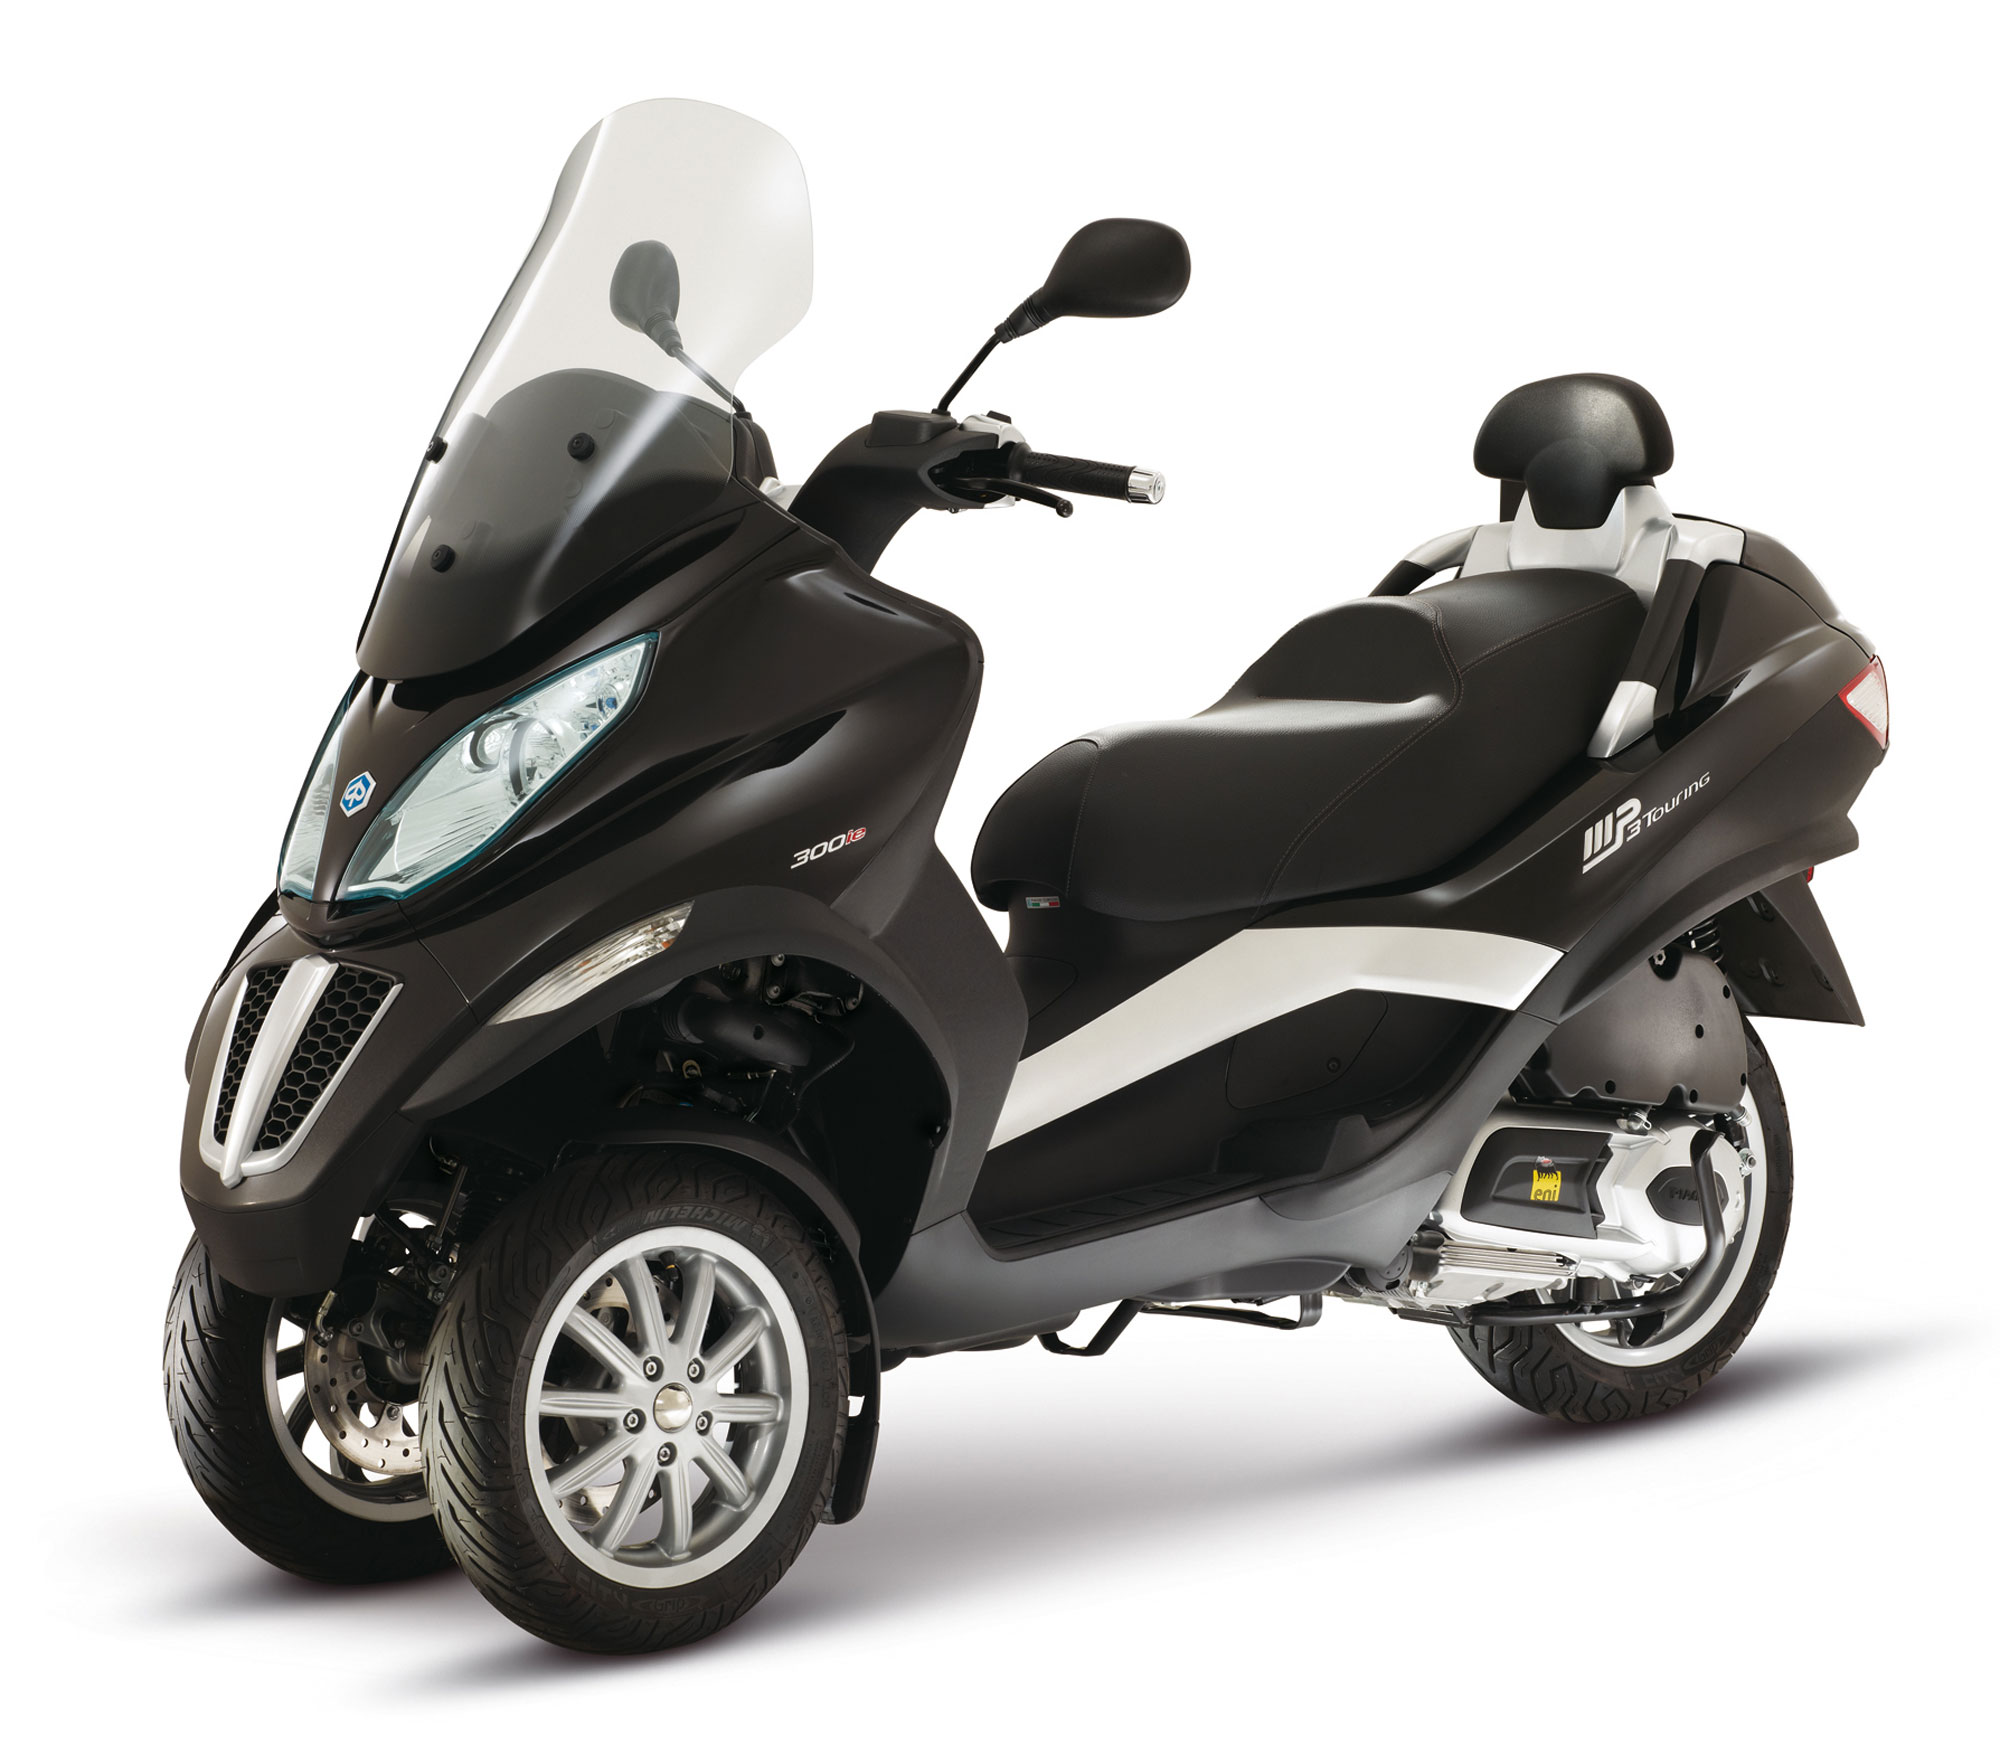 piaggio piaggio mp3 125 moto zombdrive com. Black Bedroom Furniture Sets. Home Design Ideas